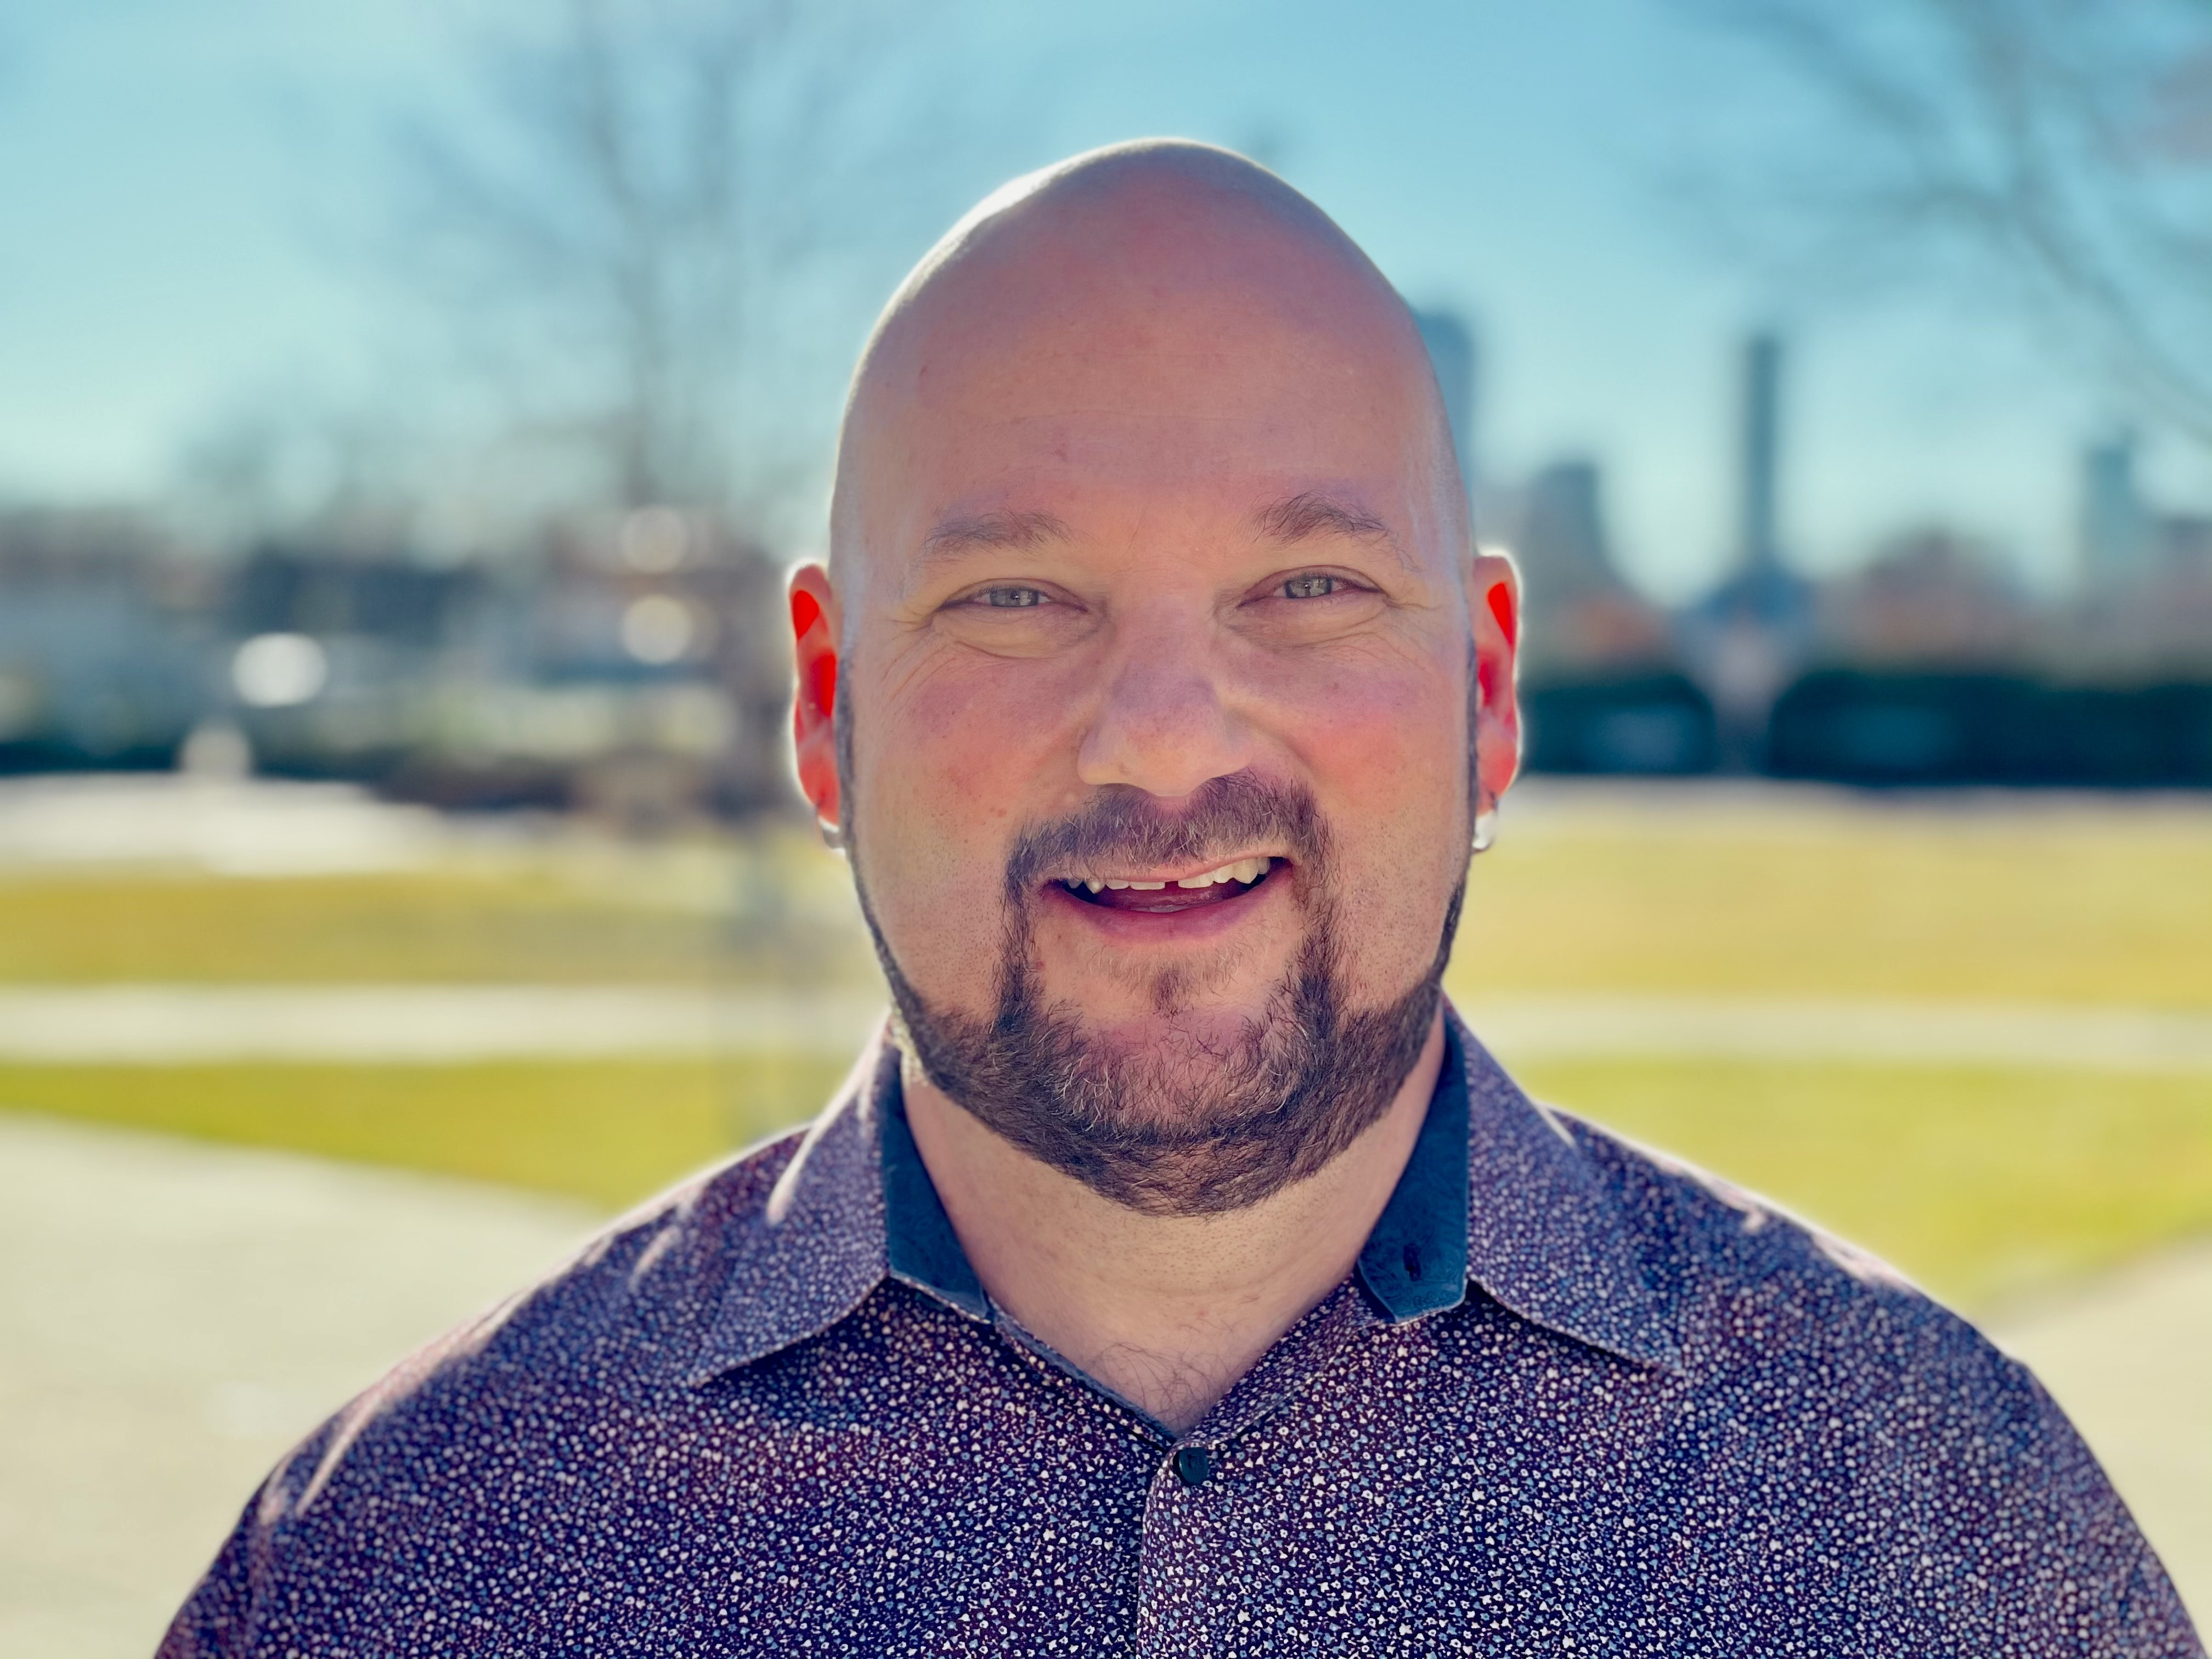 A portrait of Denver School Board candidate Scott Esserman. He is wearing a purple shirt and standing in front of a plaza with triangular spaces of lawn with cars parked behind.